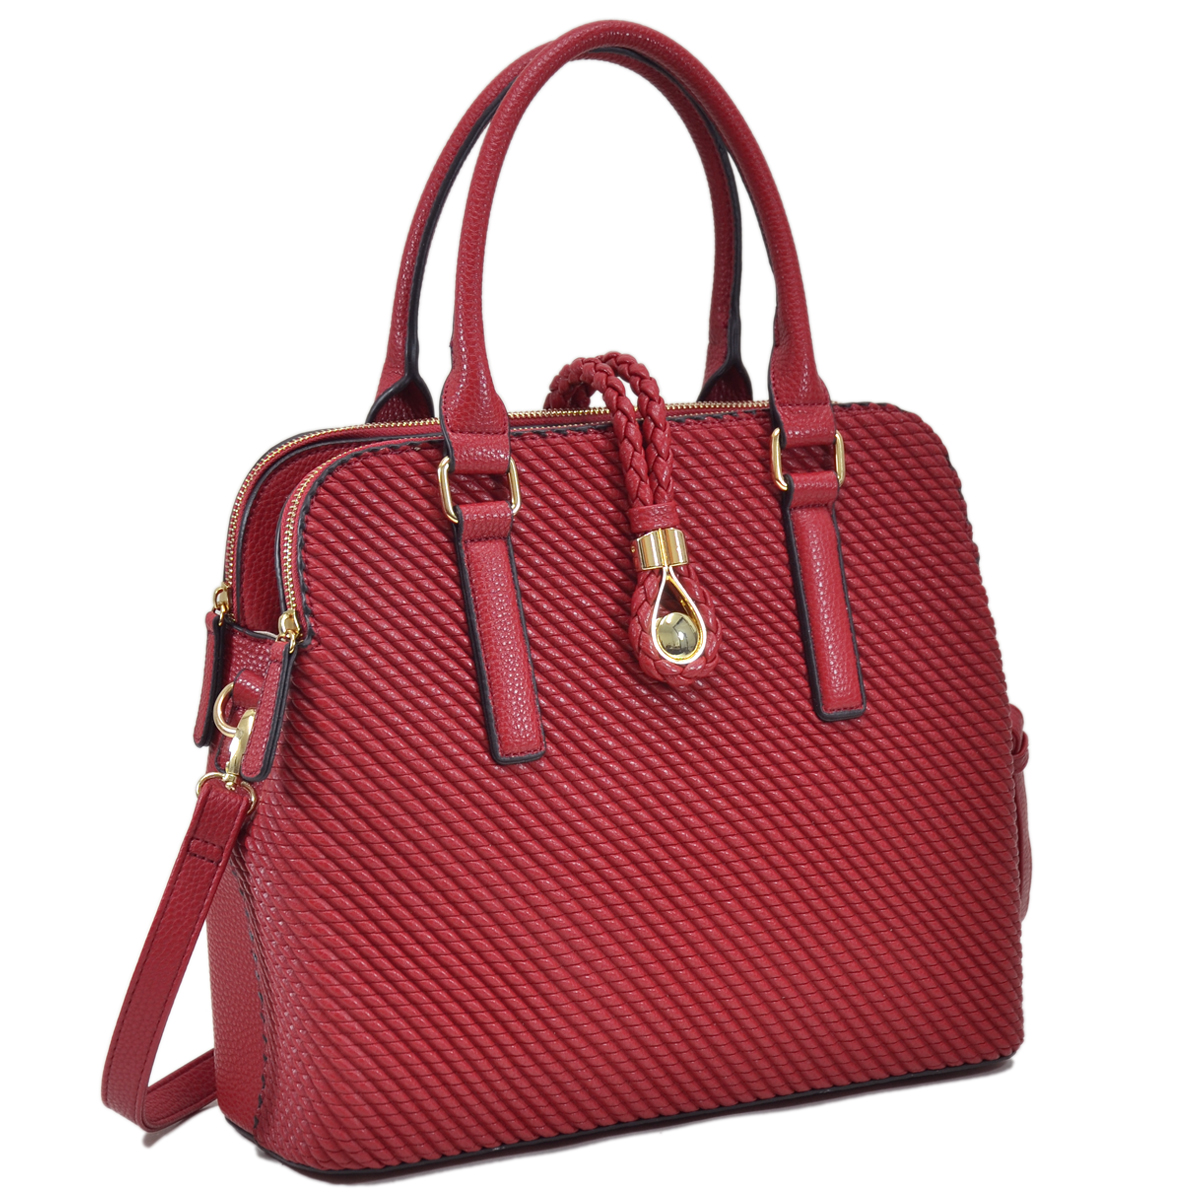 Dasein Faux Leather Medium Weaved Design Satchel